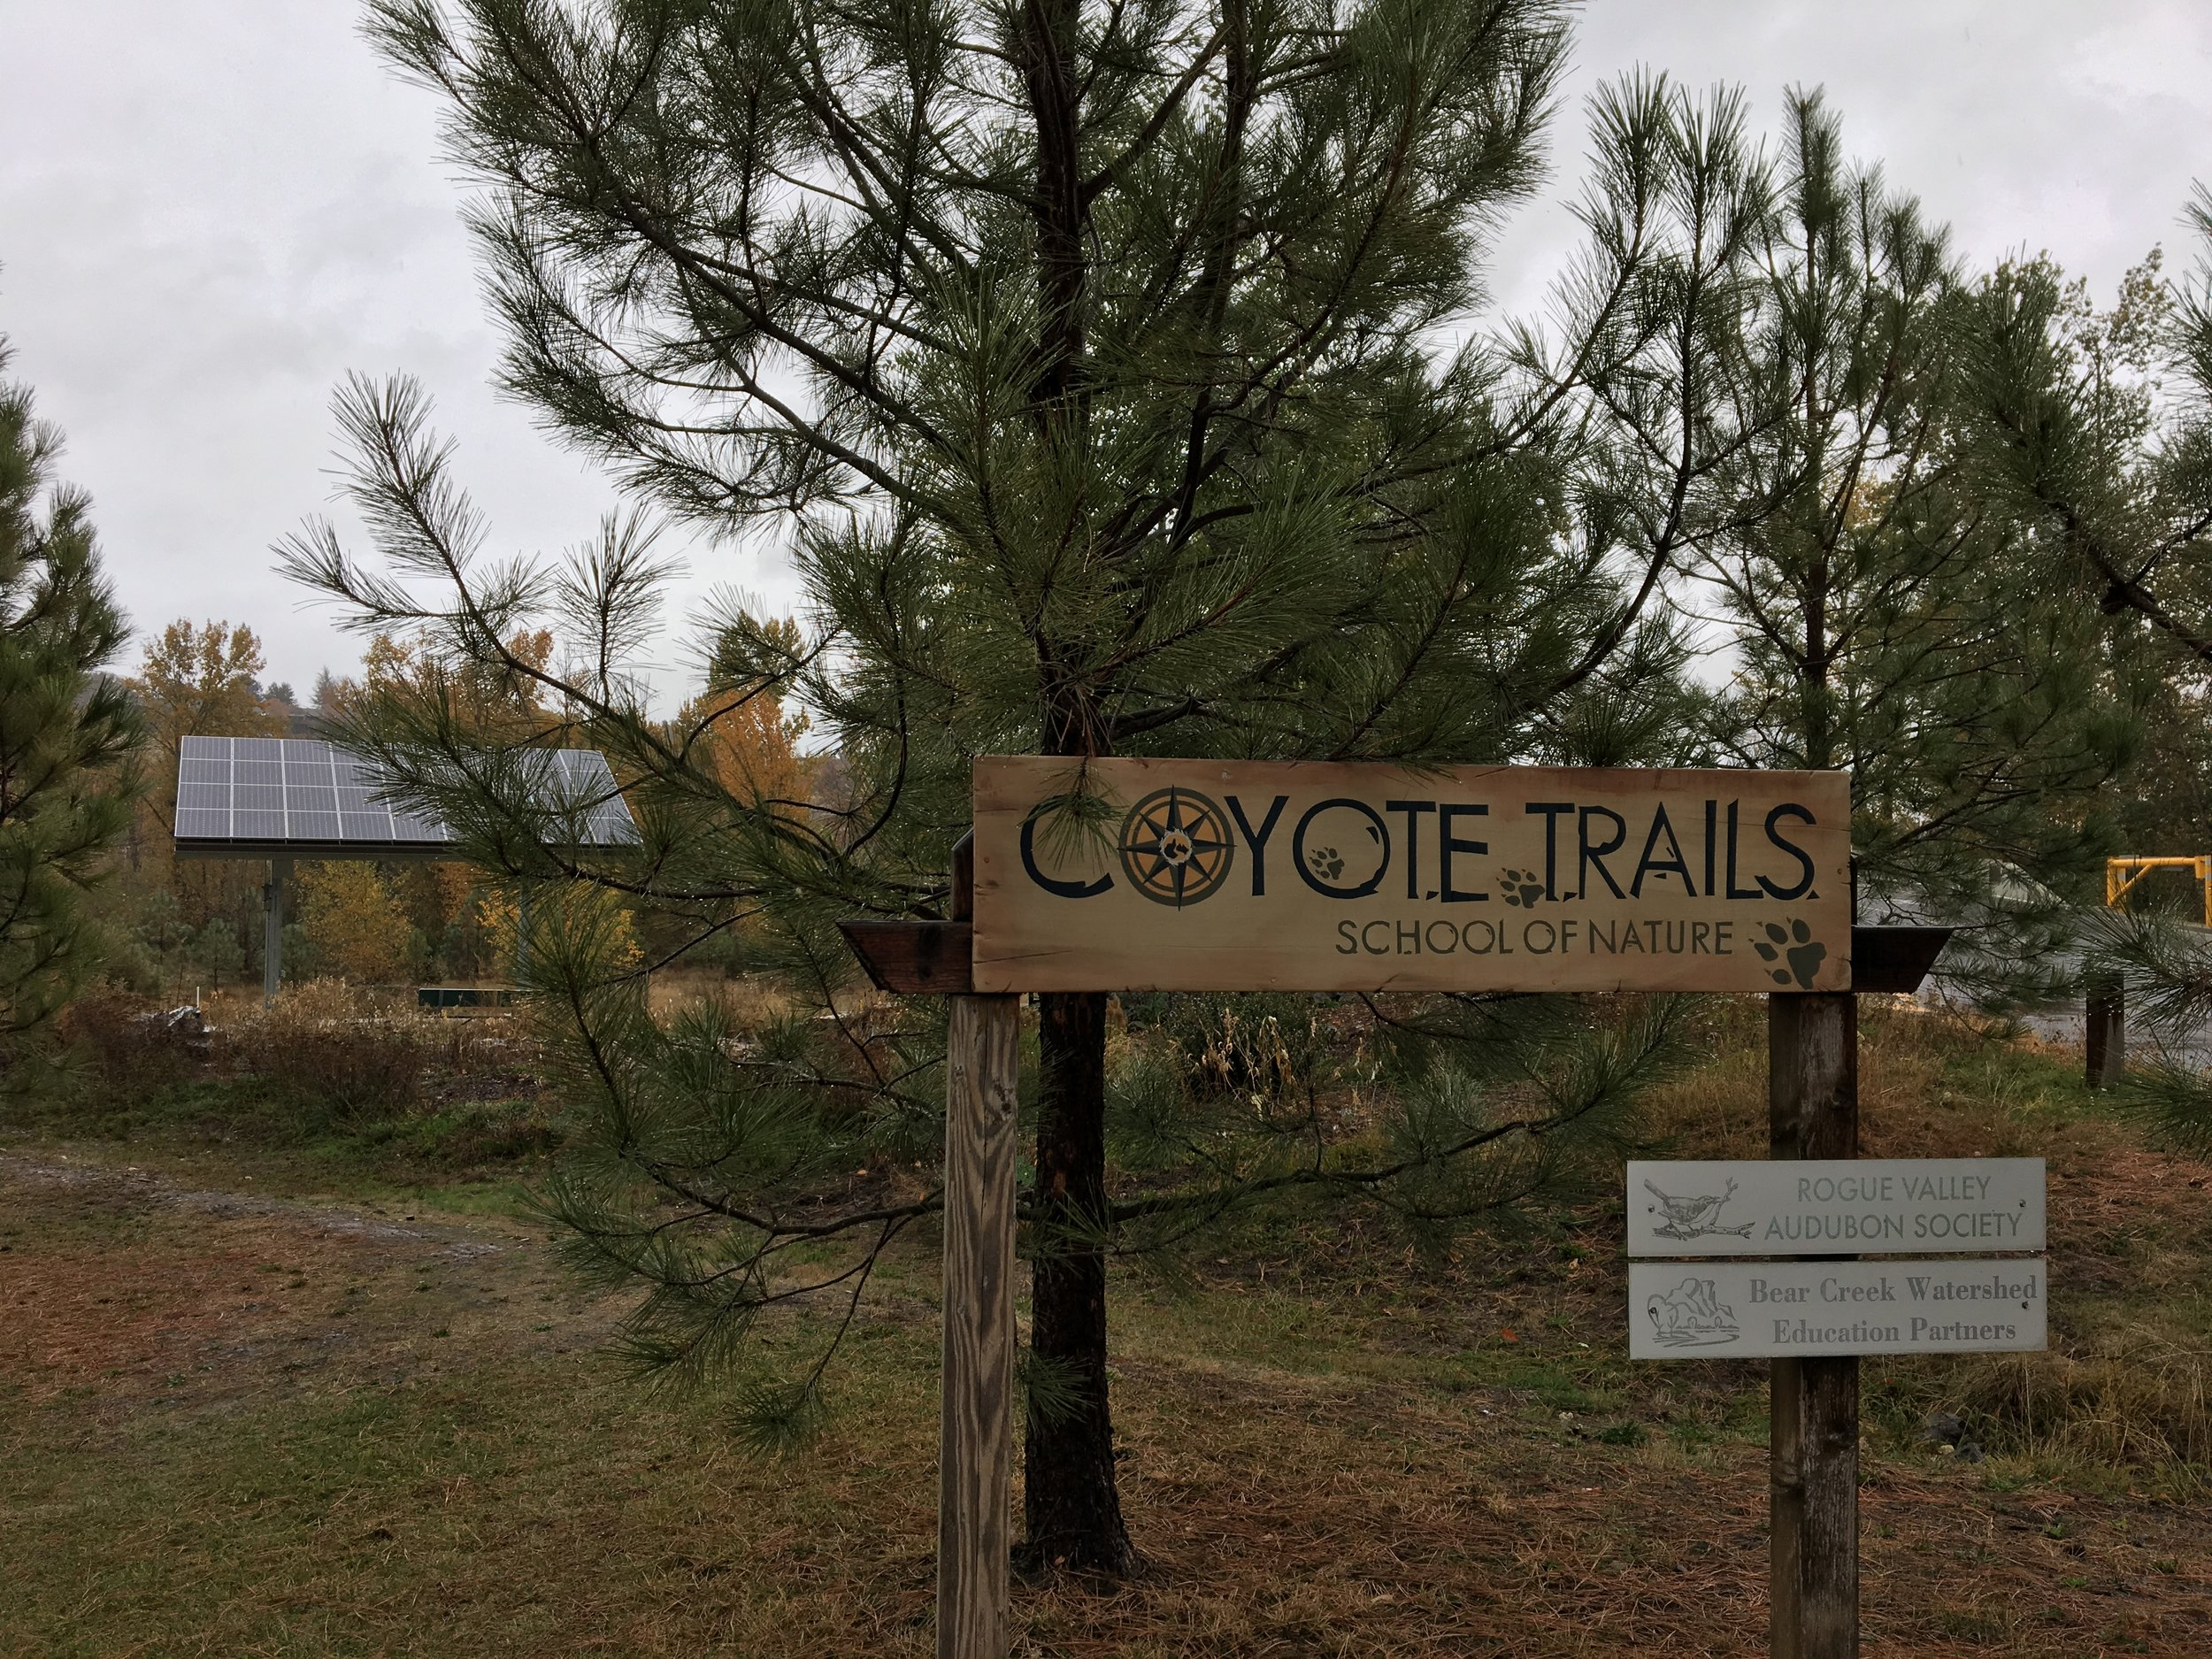 coyote-trails-solar-pv.jpg